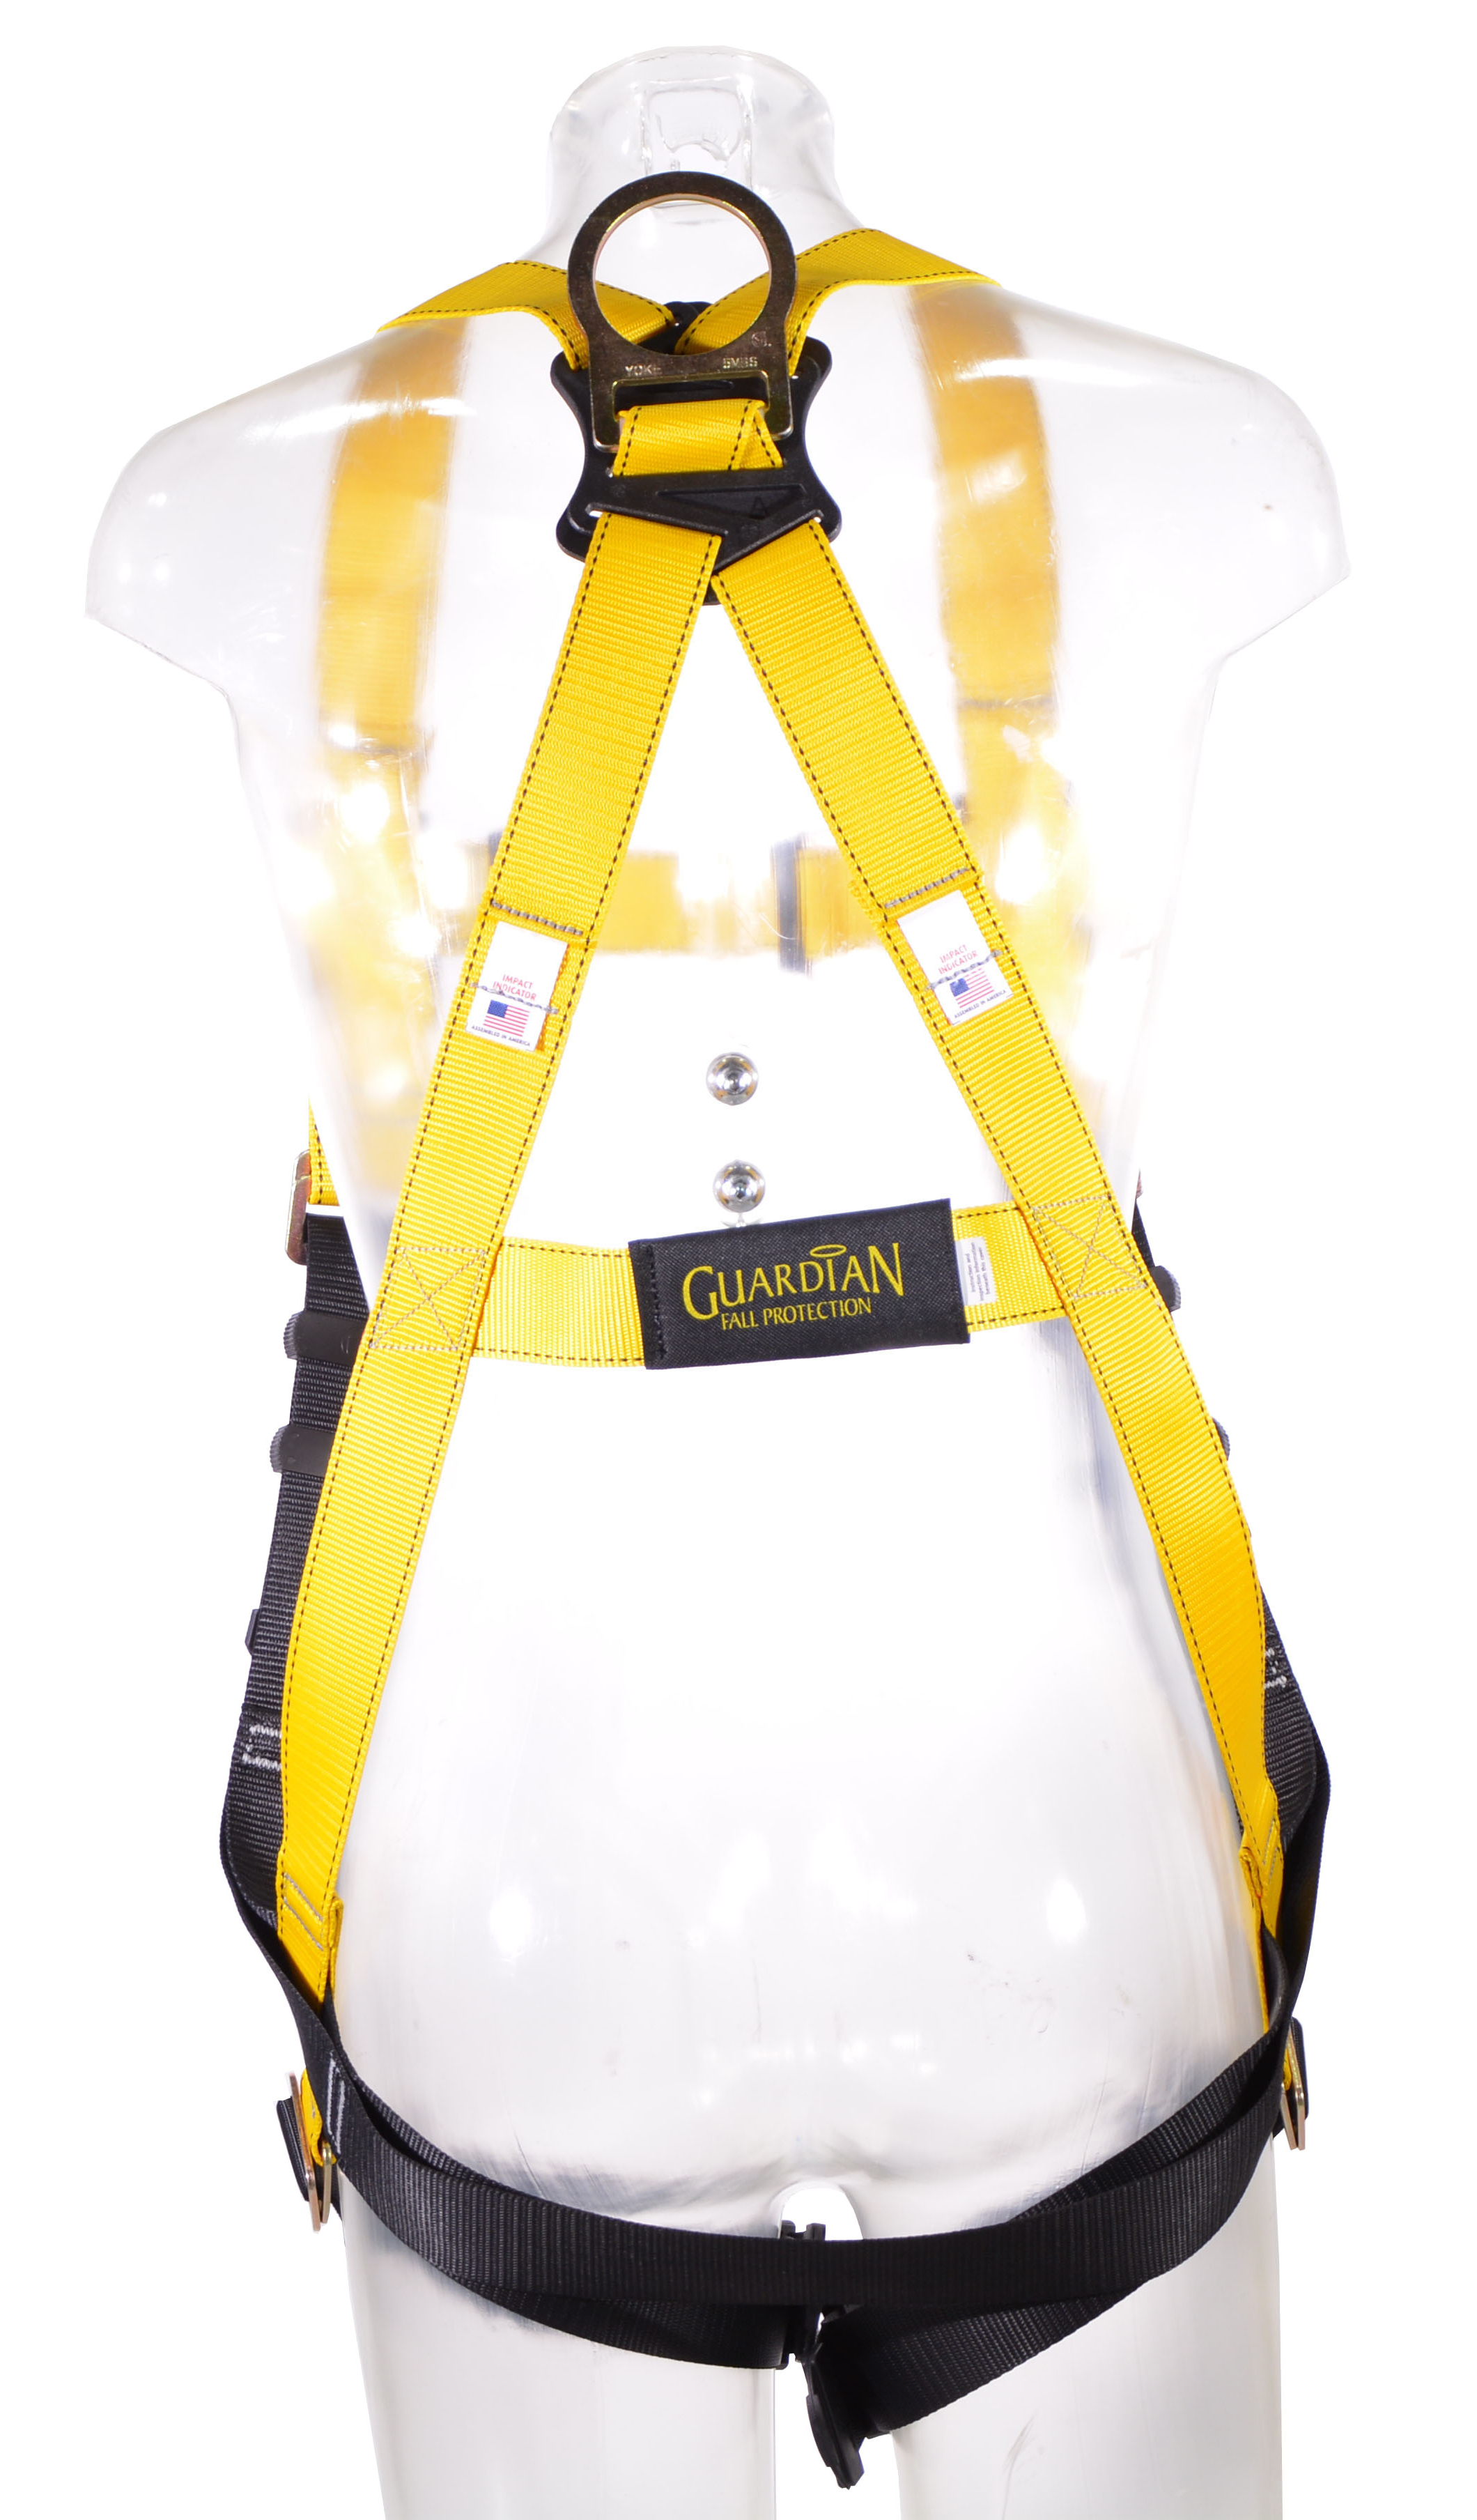 Guardian Series 1 Full-Body Harness, Pass-Through Chest and Legs, Back